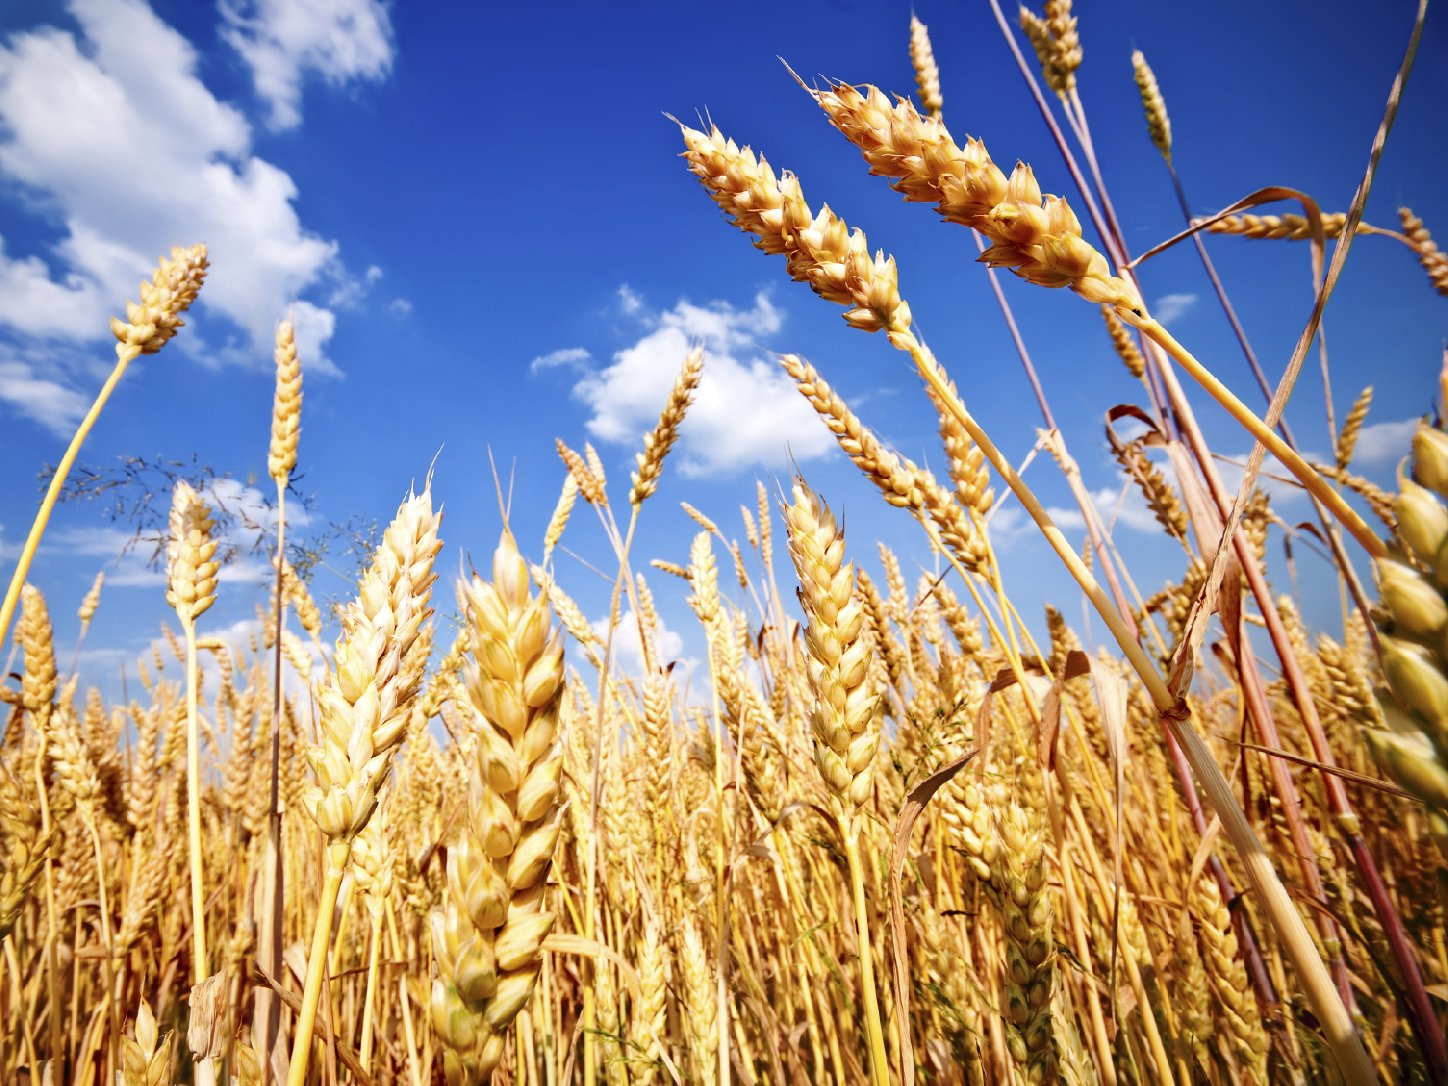 Less Nutritious Grains May Be In Our Future